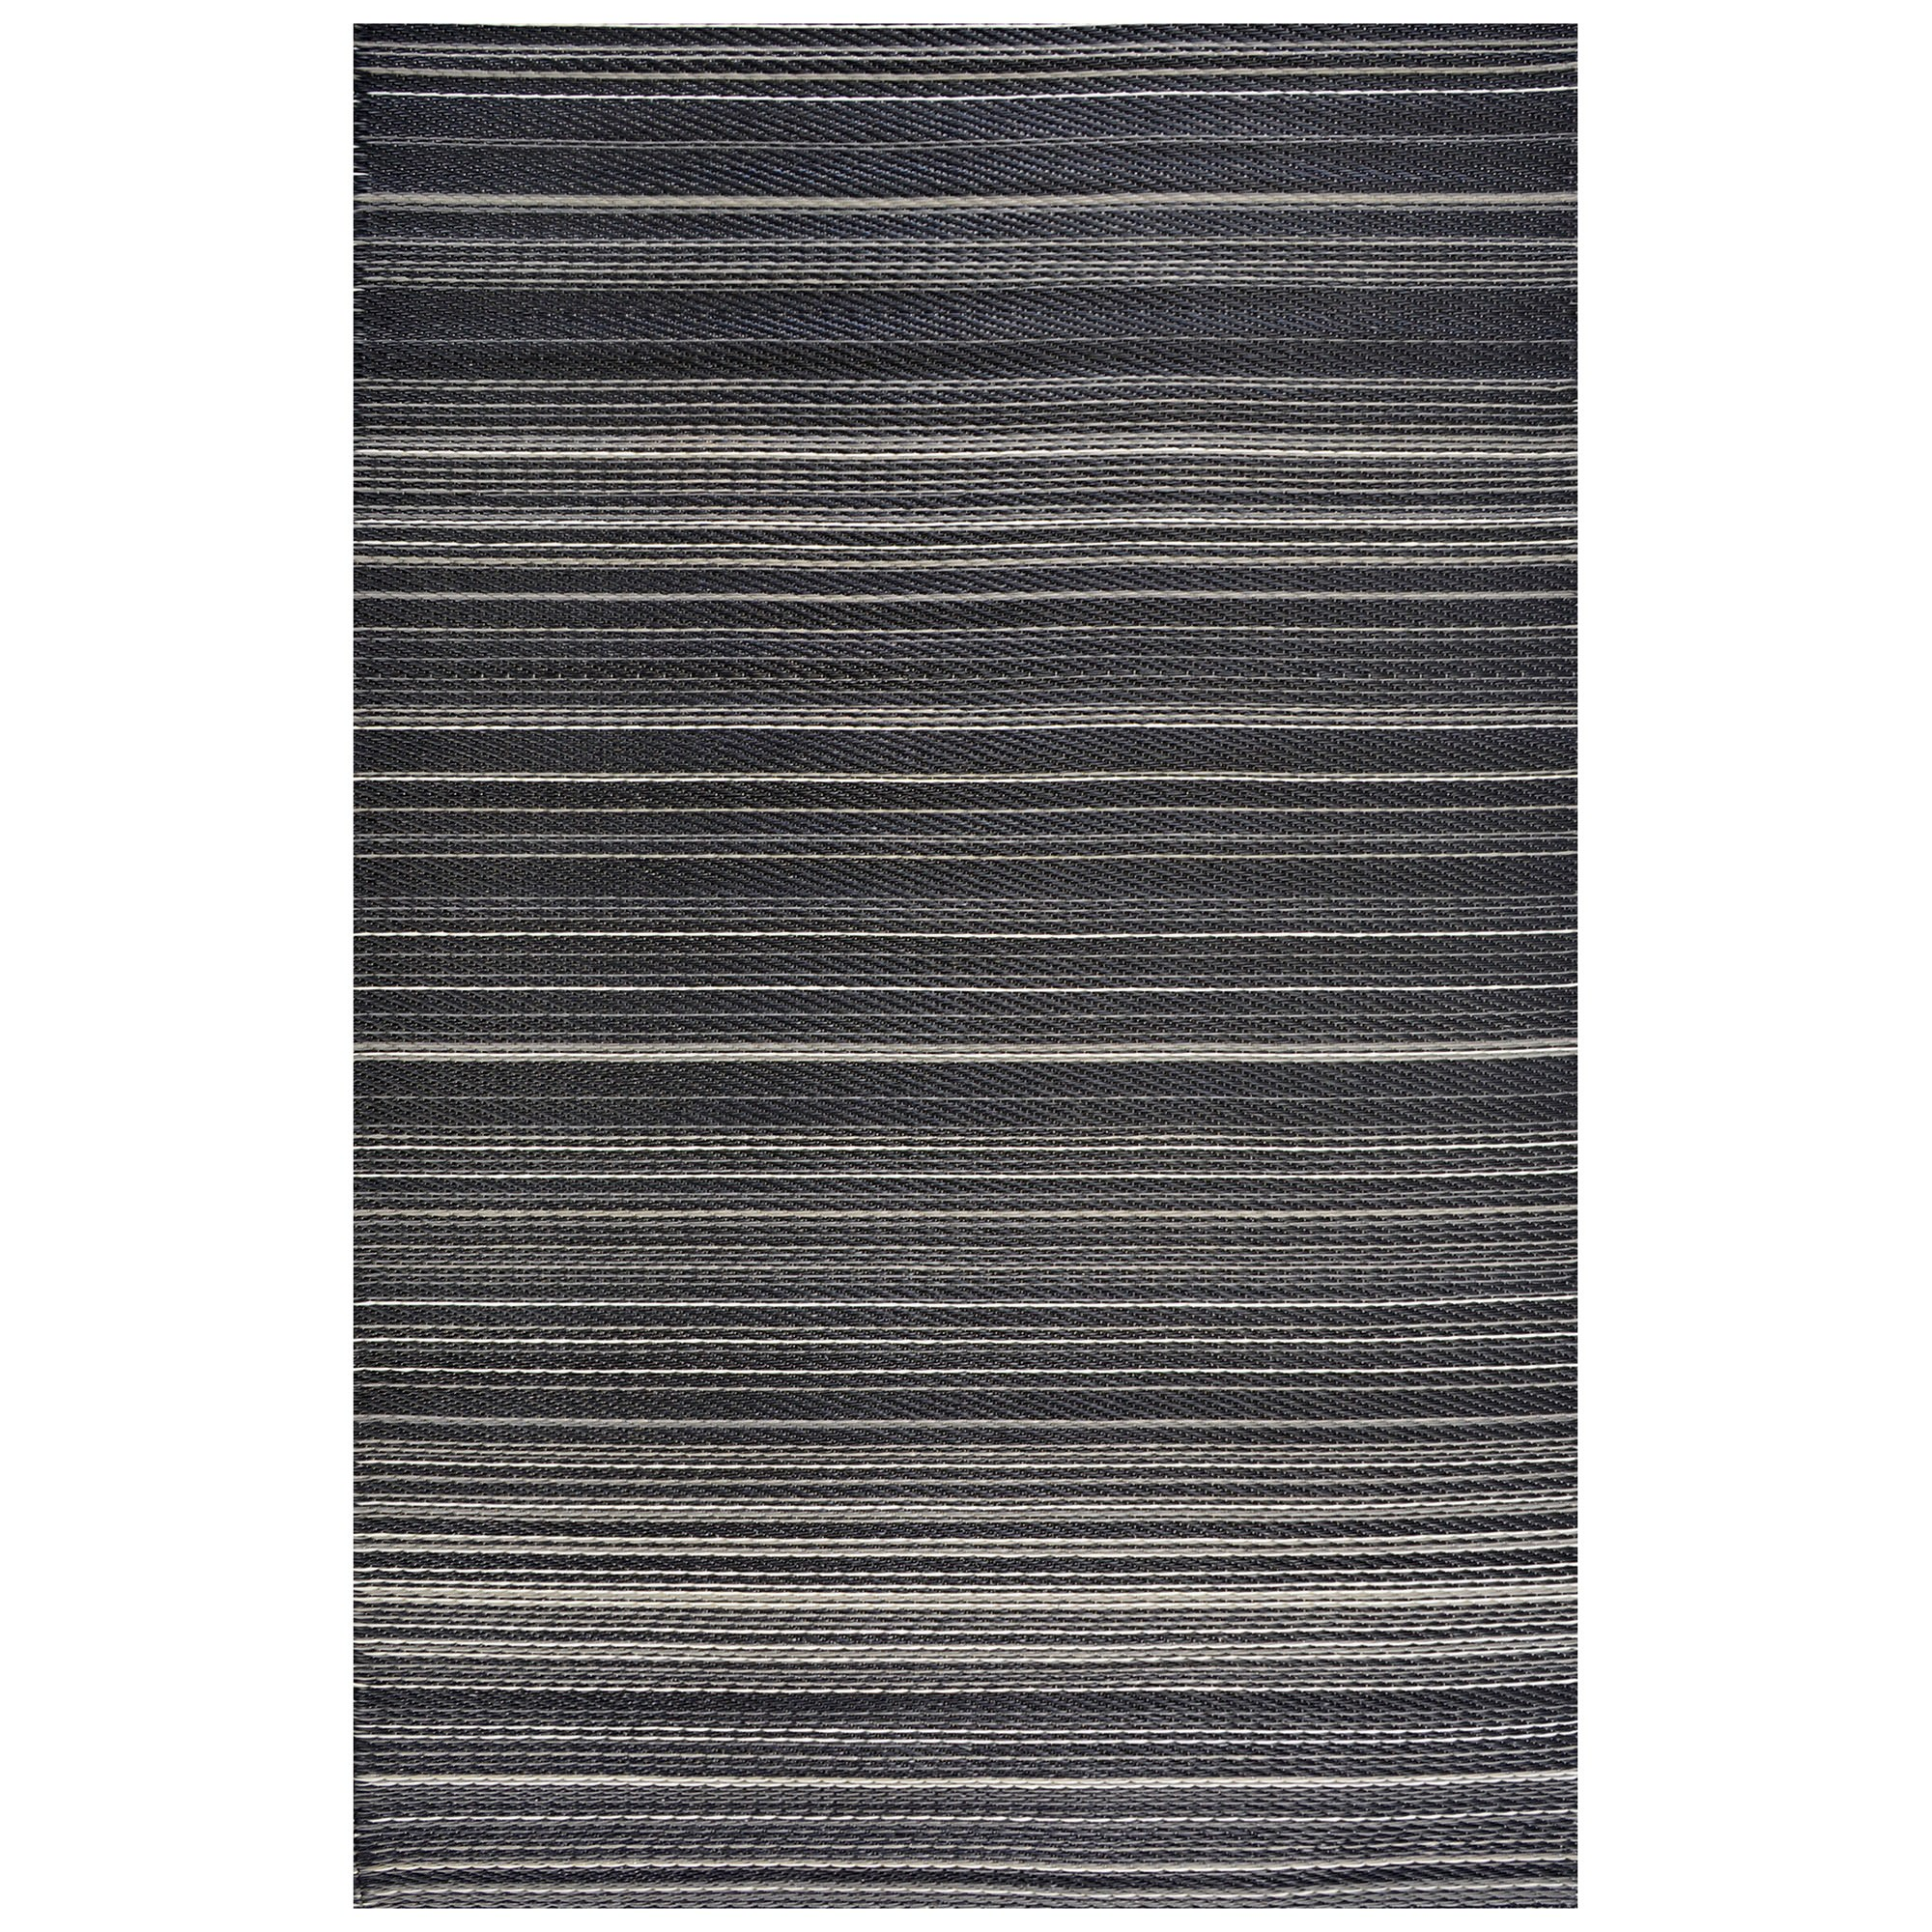 Chatai Rongoli Reversible Outdoor Rug, 150x90cm, Black